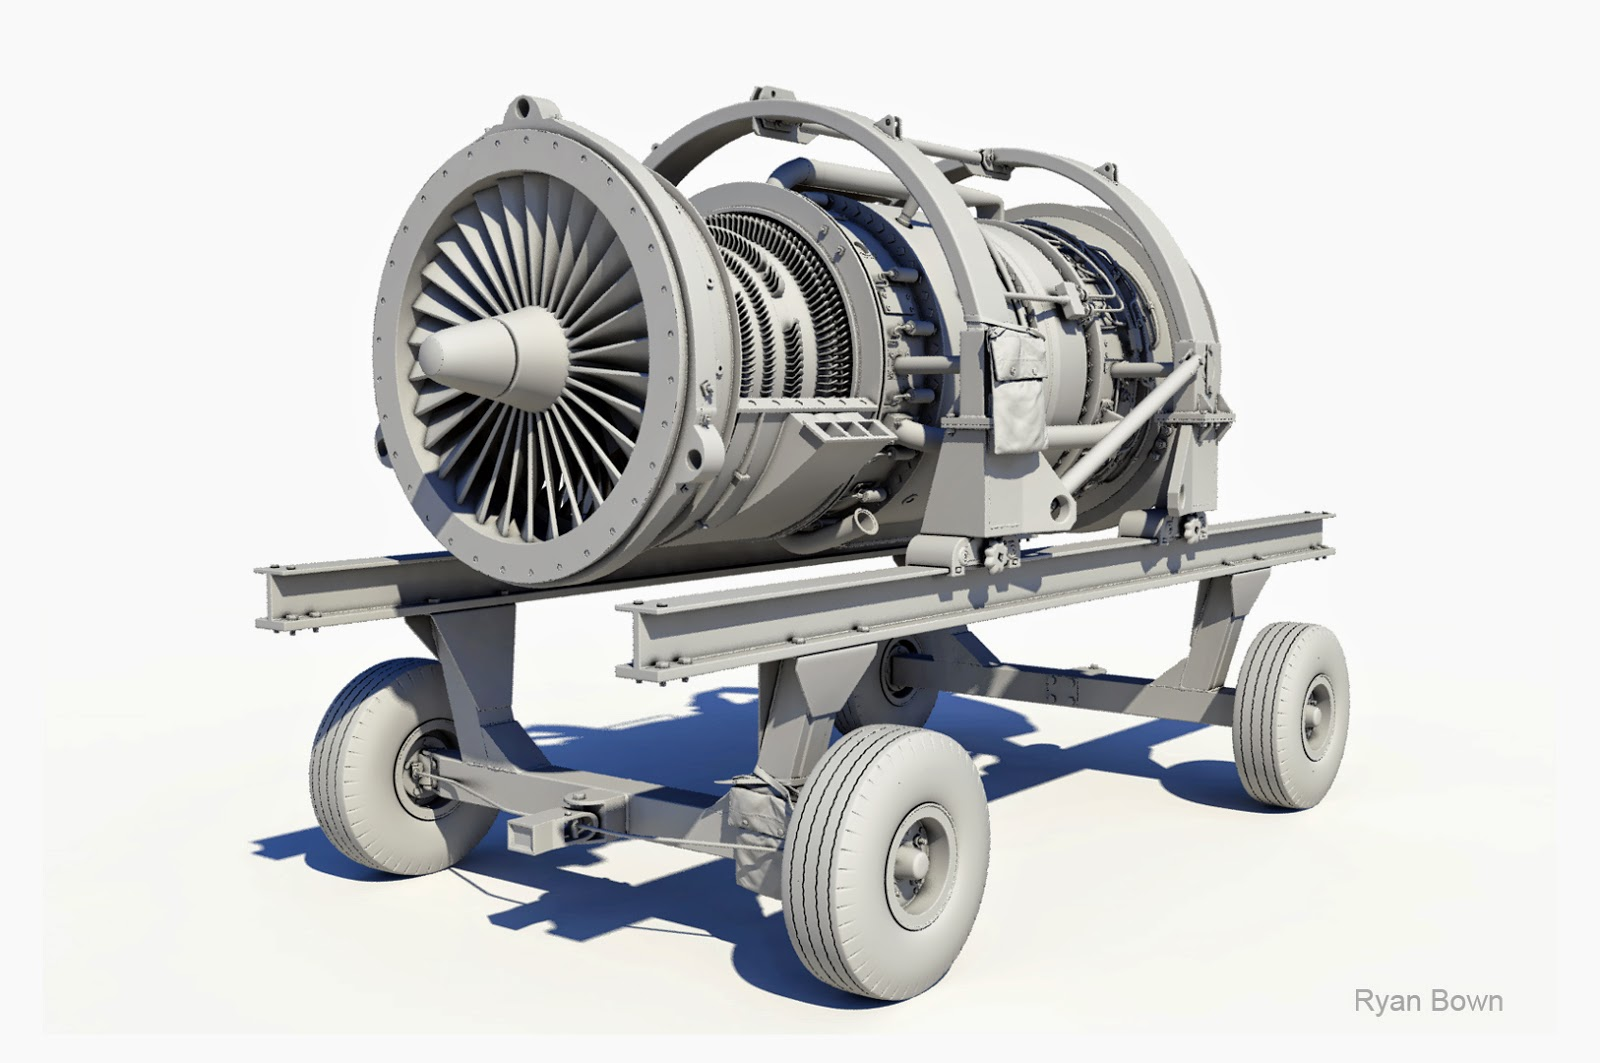 engine_01_ryan_bown.jpg